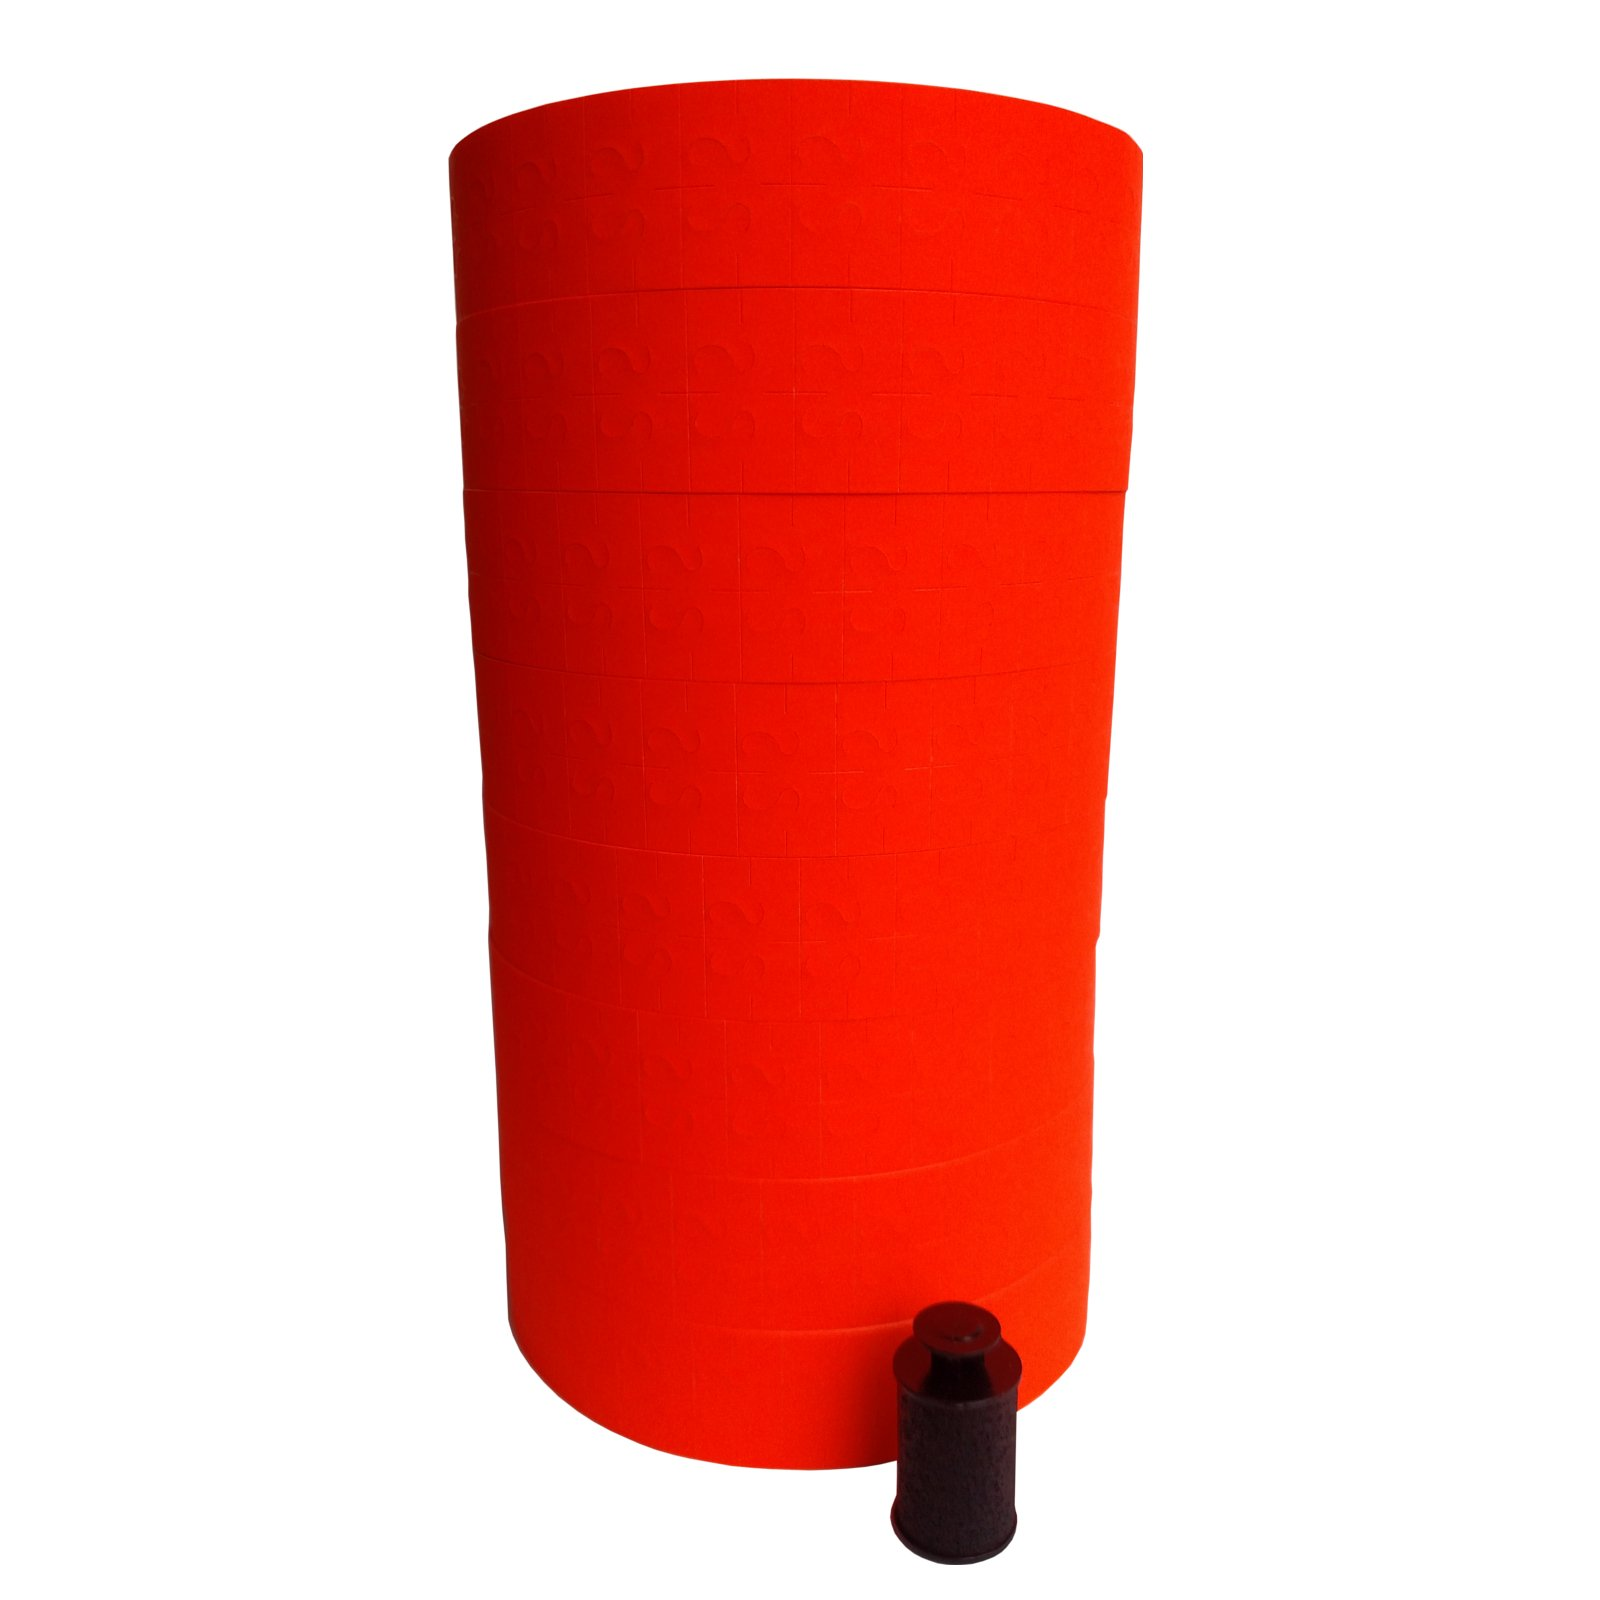 Red Labels for Monarch 1131 Gun - 8 Rolls - 20,000 Labels by Storesupplies